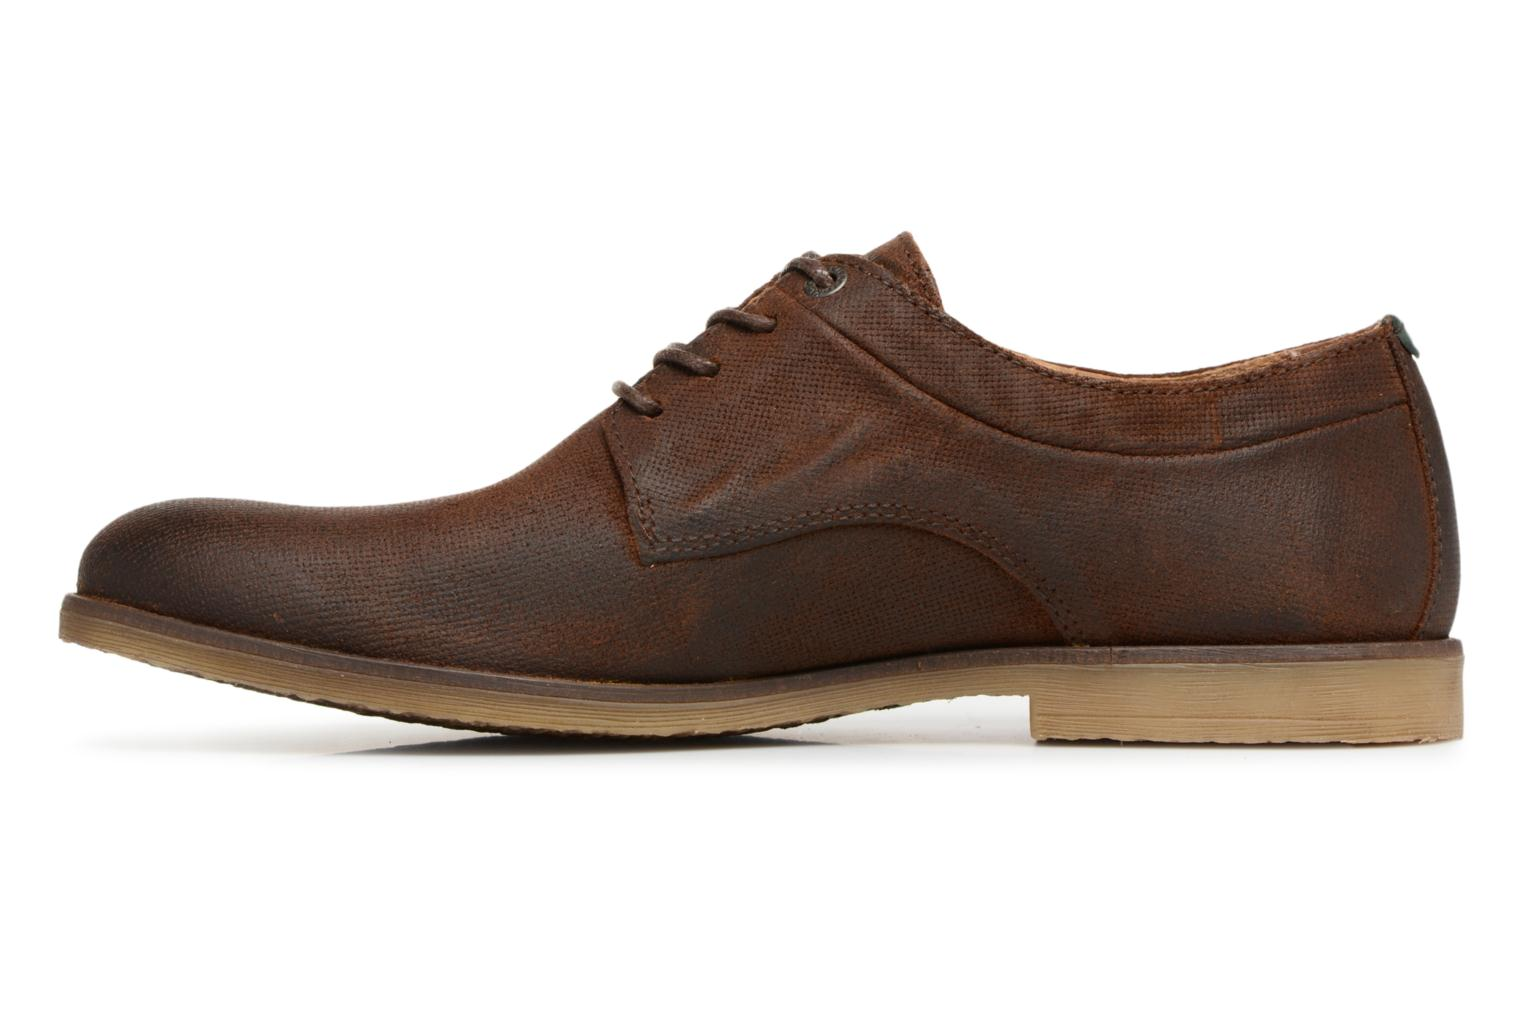 Chaussures à lacets Kickers FLAVESTON Marron vue face